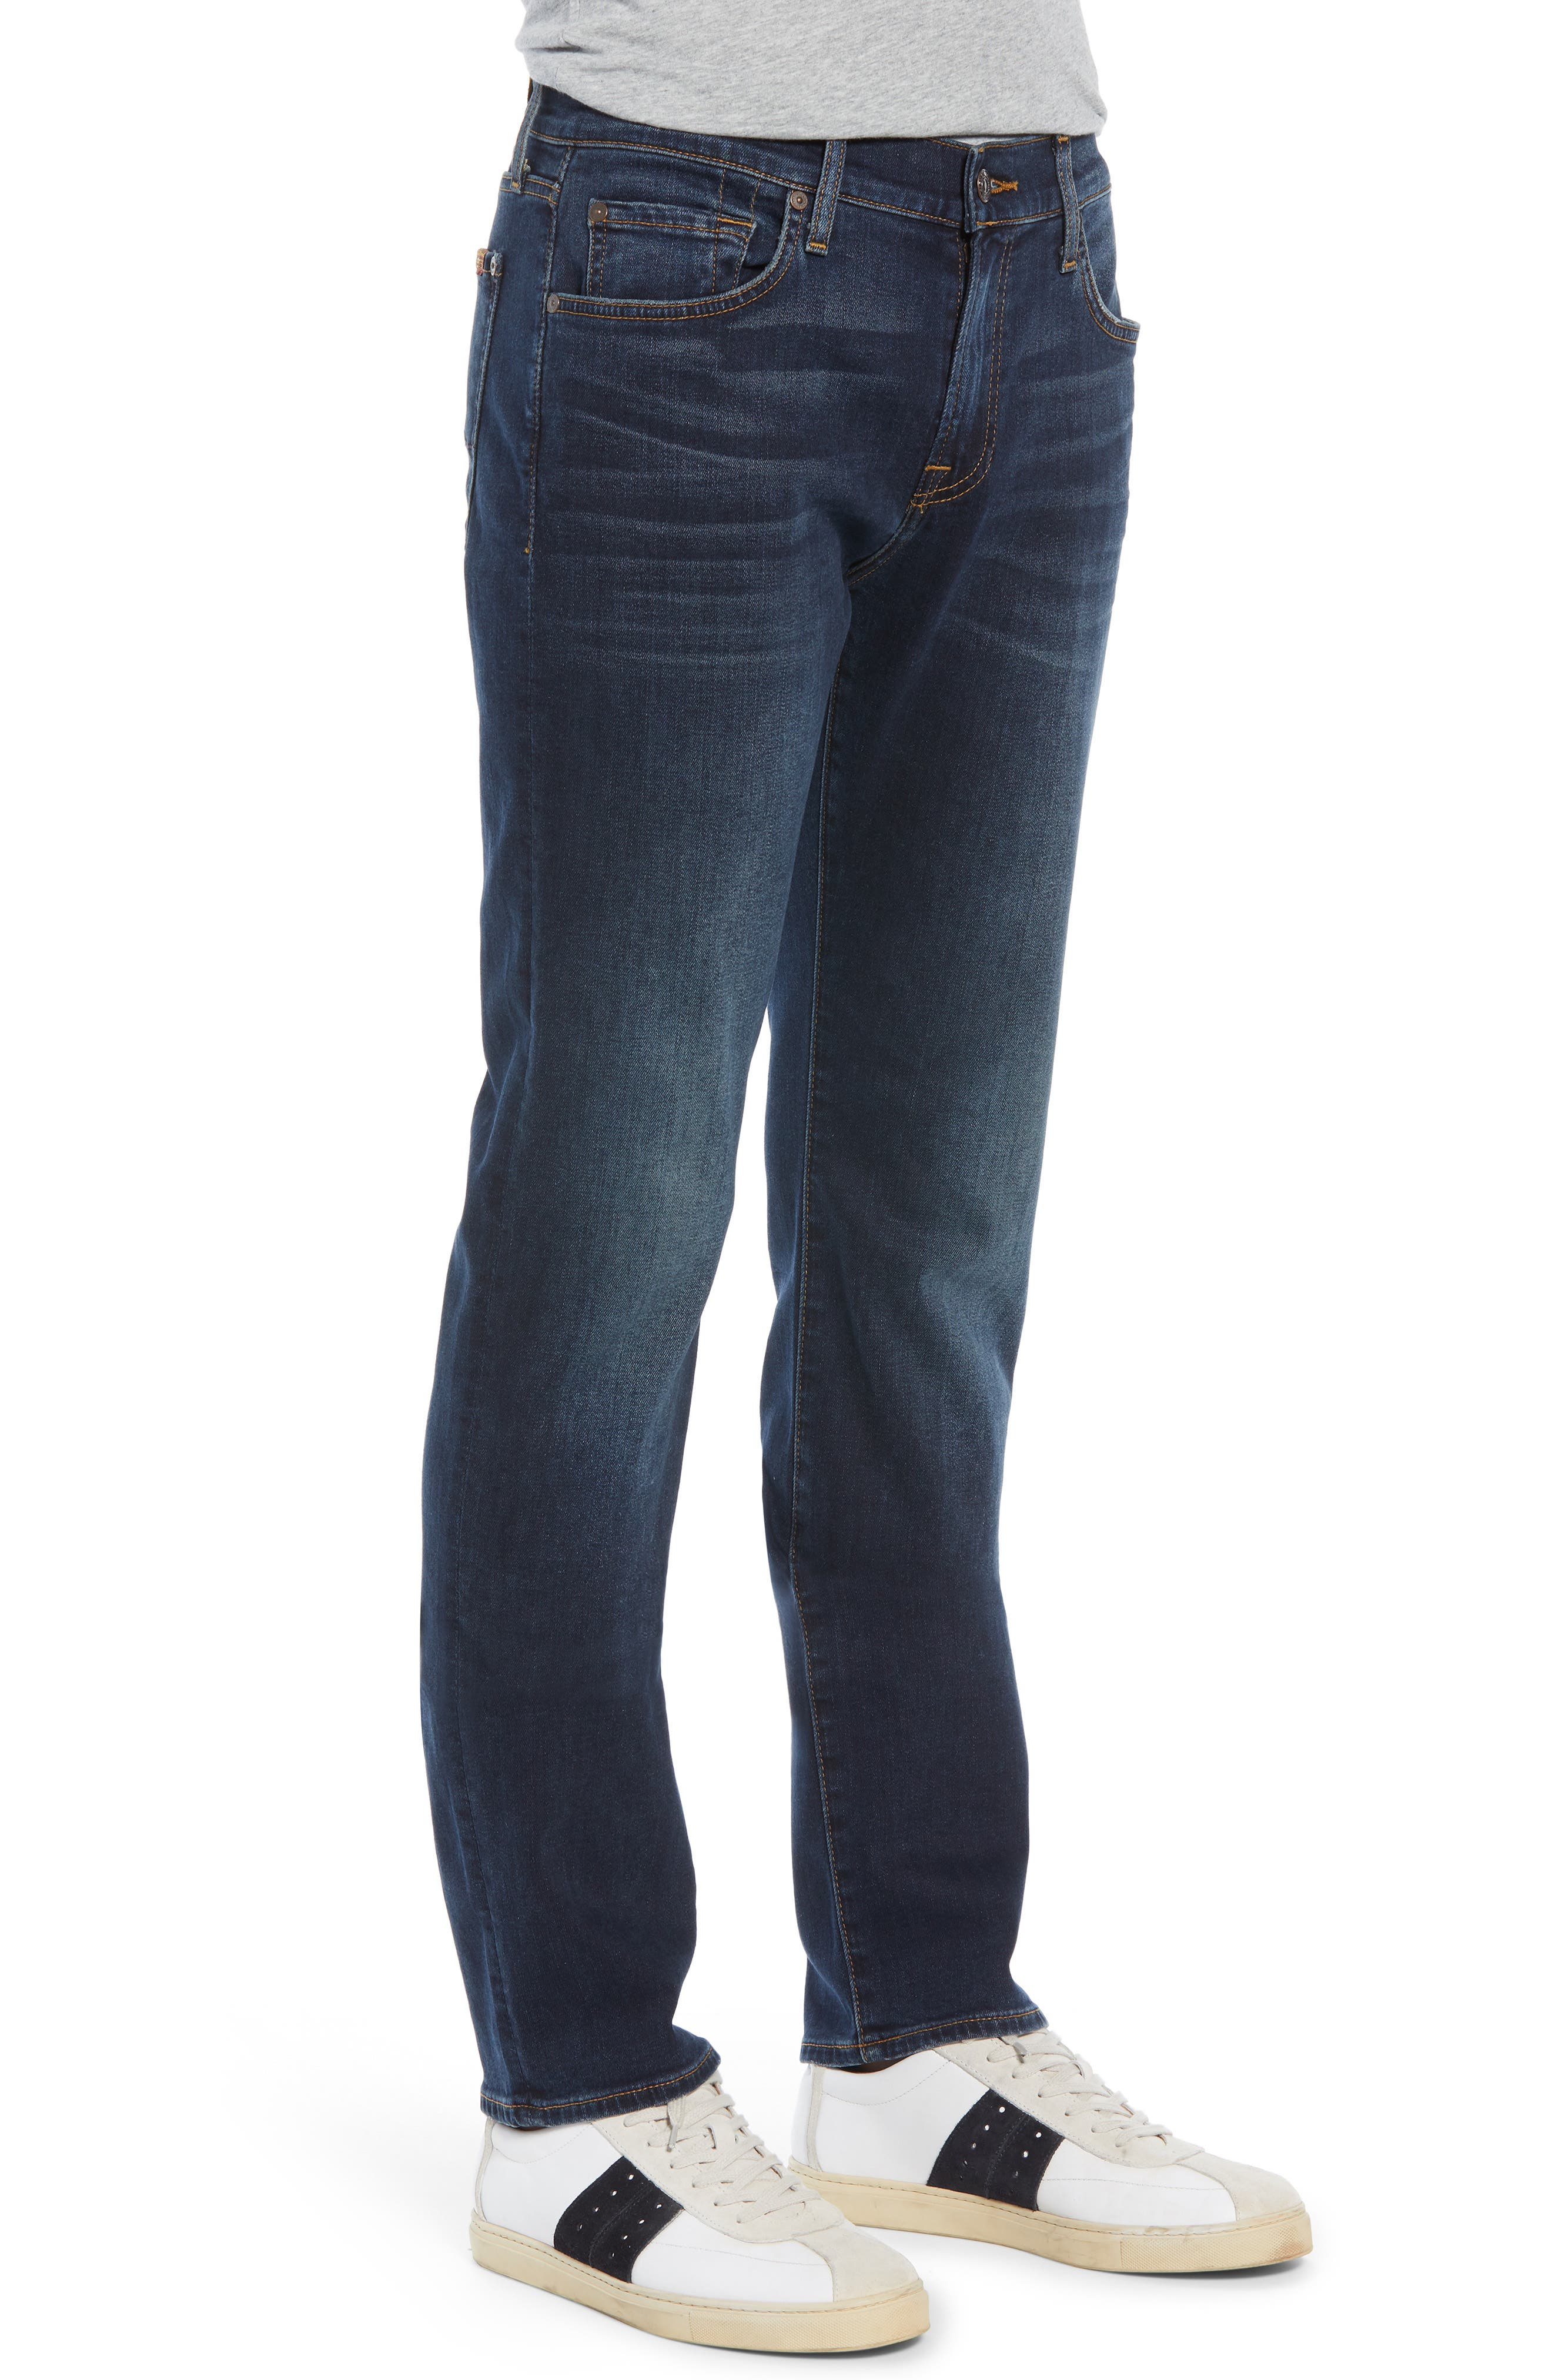 Slimmy Slim Fit Jeans,                             Alternate thumbnail 3, color,                             LONEWOLF